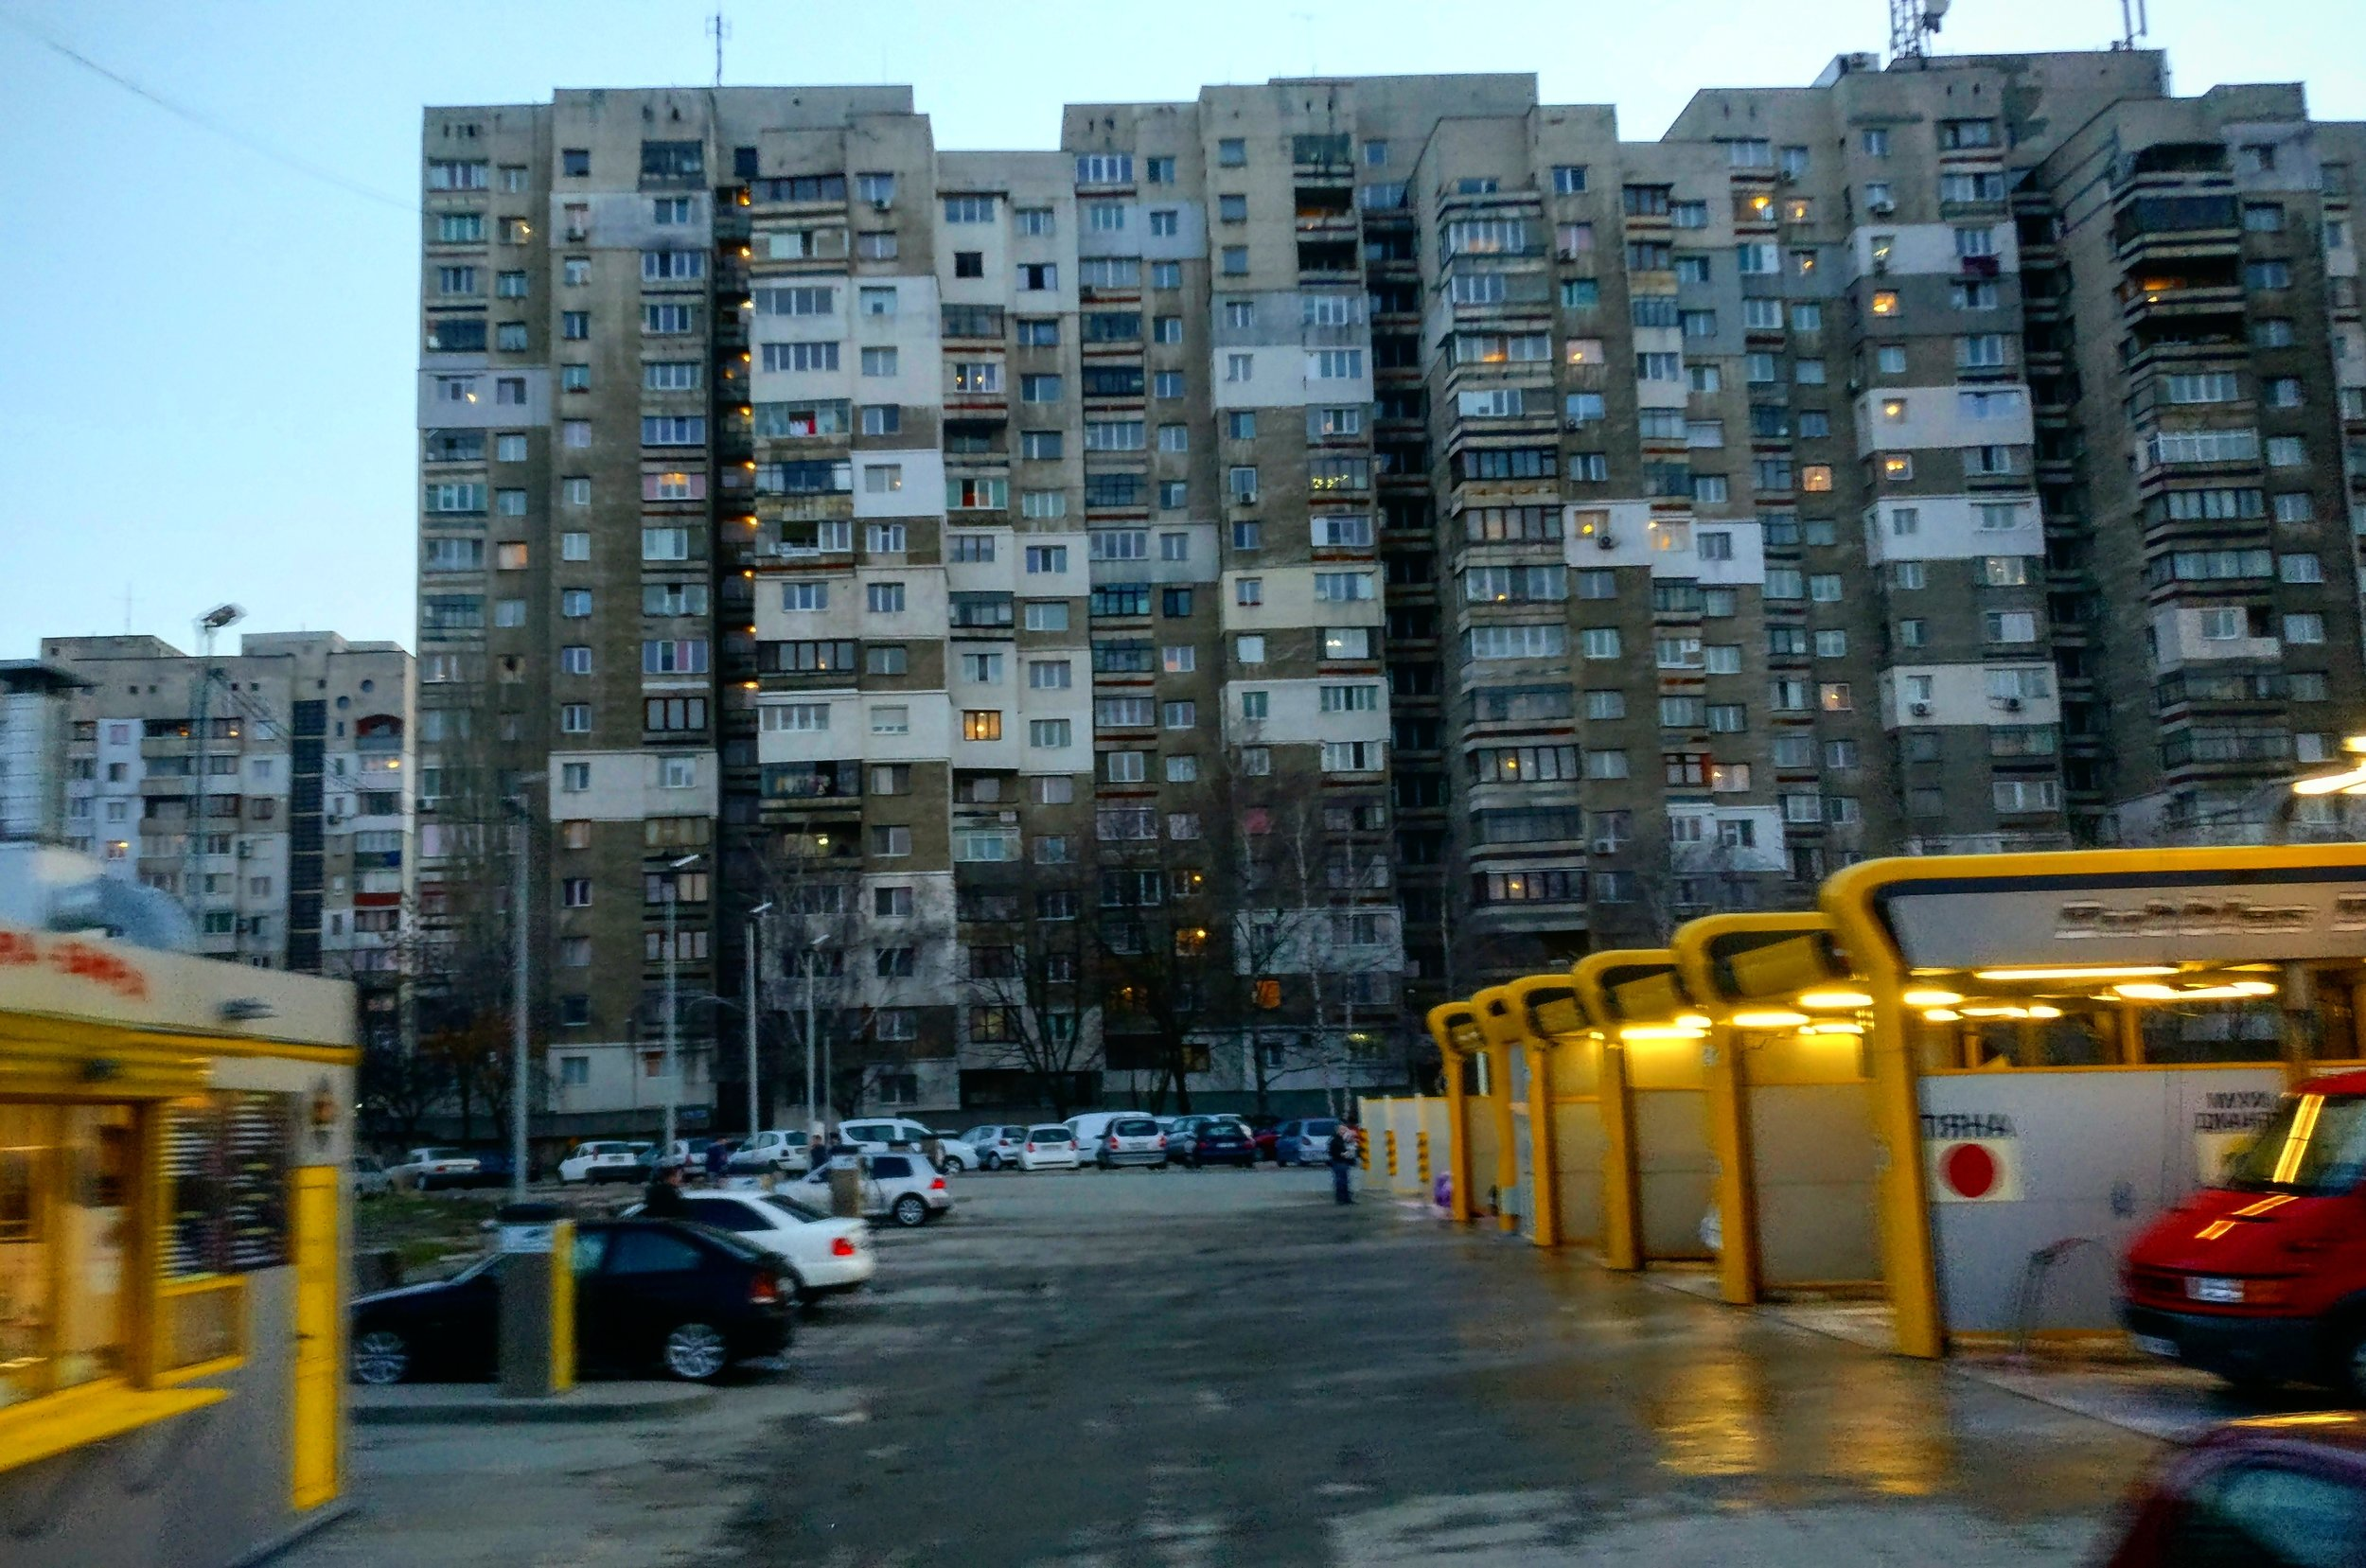 The dull apartments in the outskirts